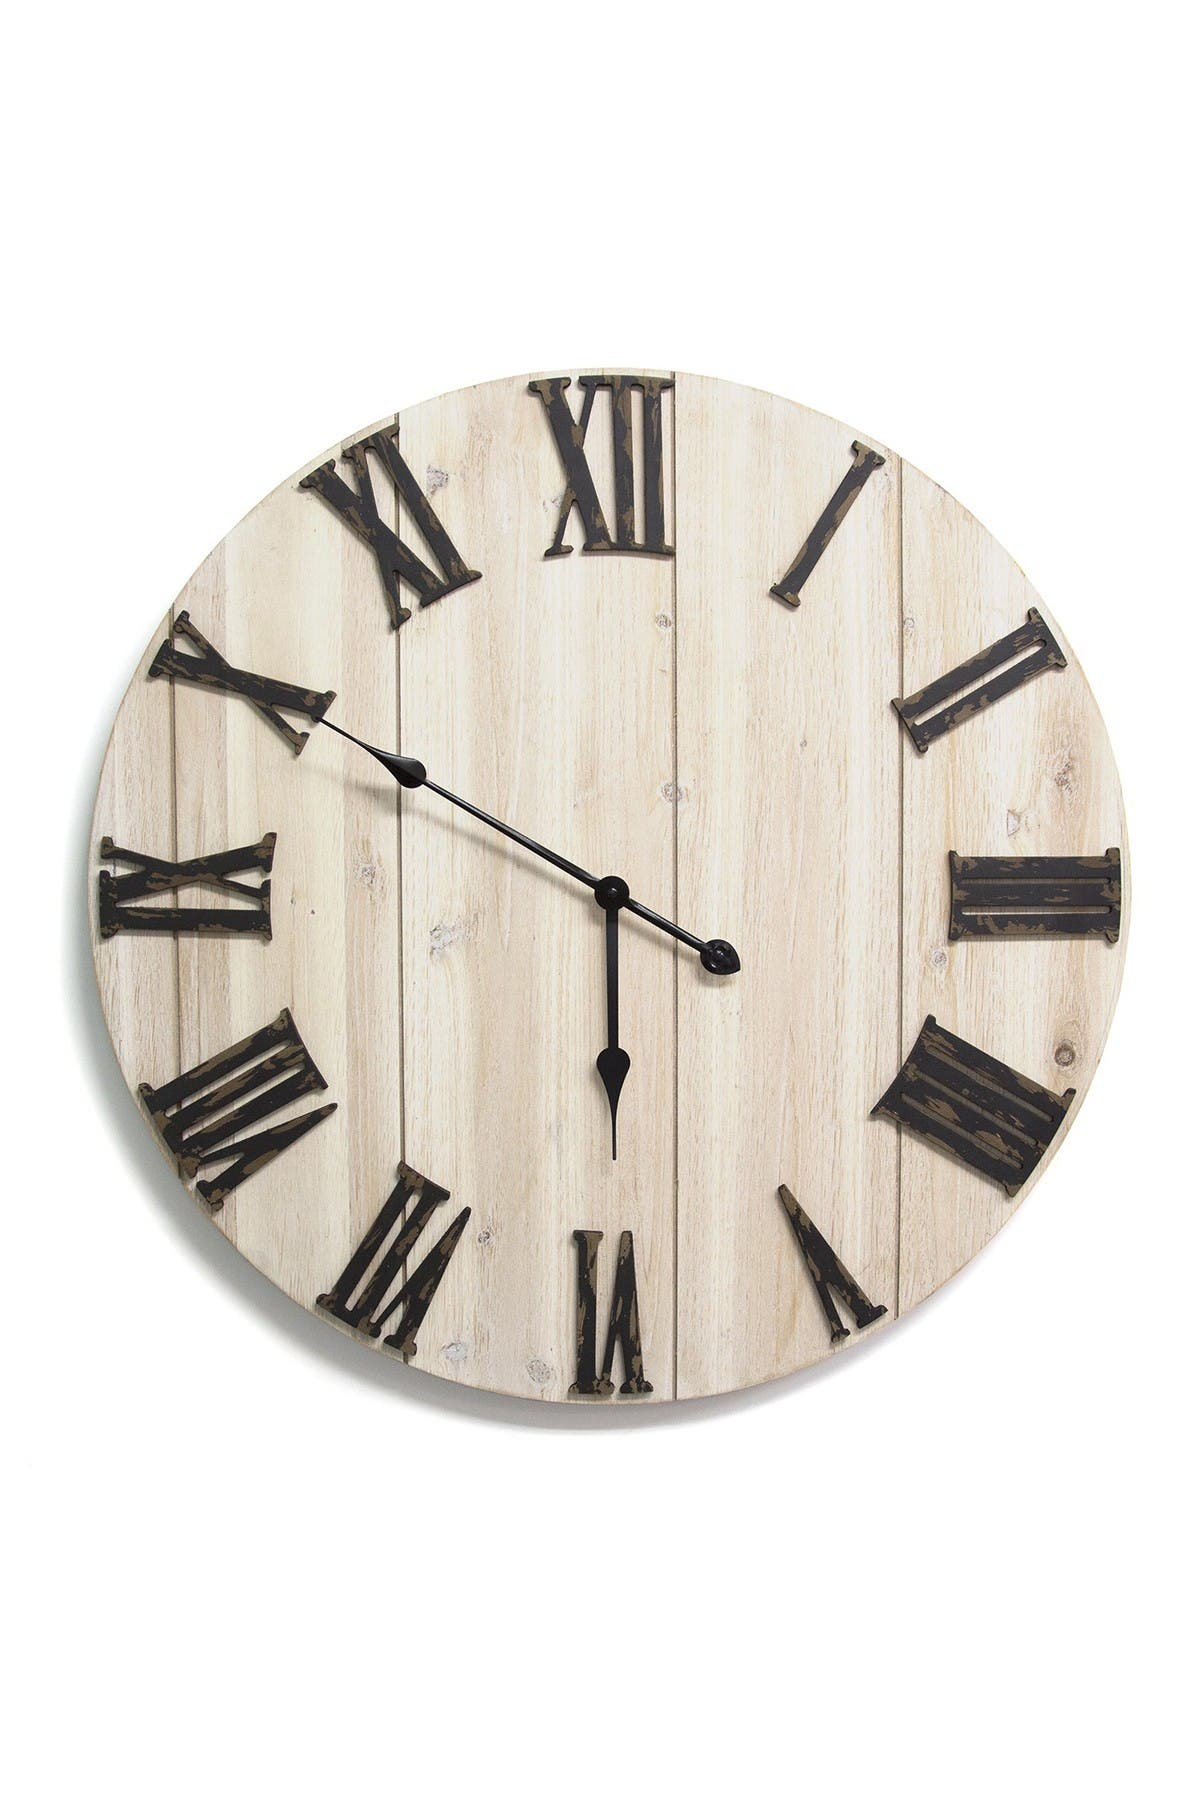 Image of Stratton Home Antique Bronze/Distressed Whitewashed Wood Wall Clock